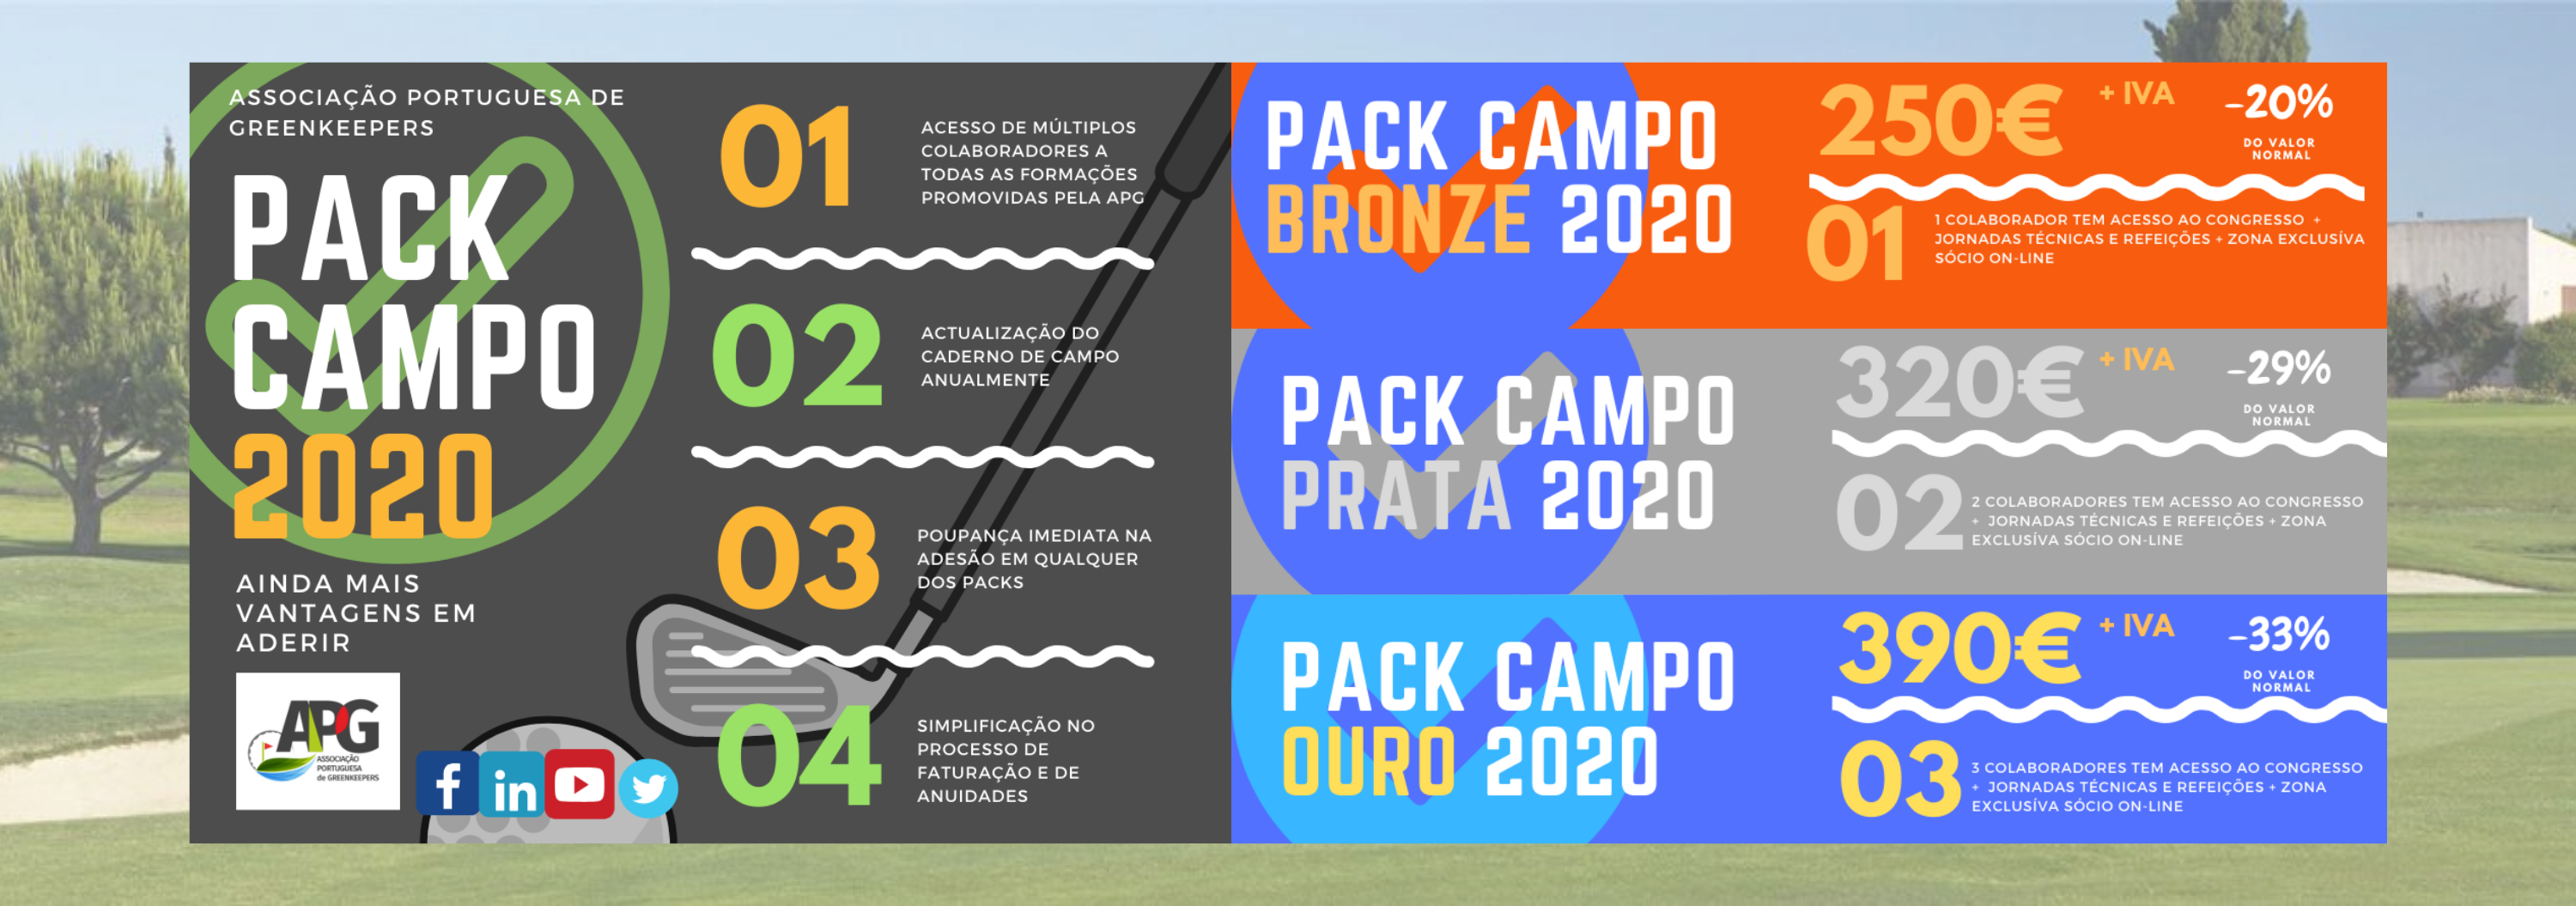 Pack Campo 2020